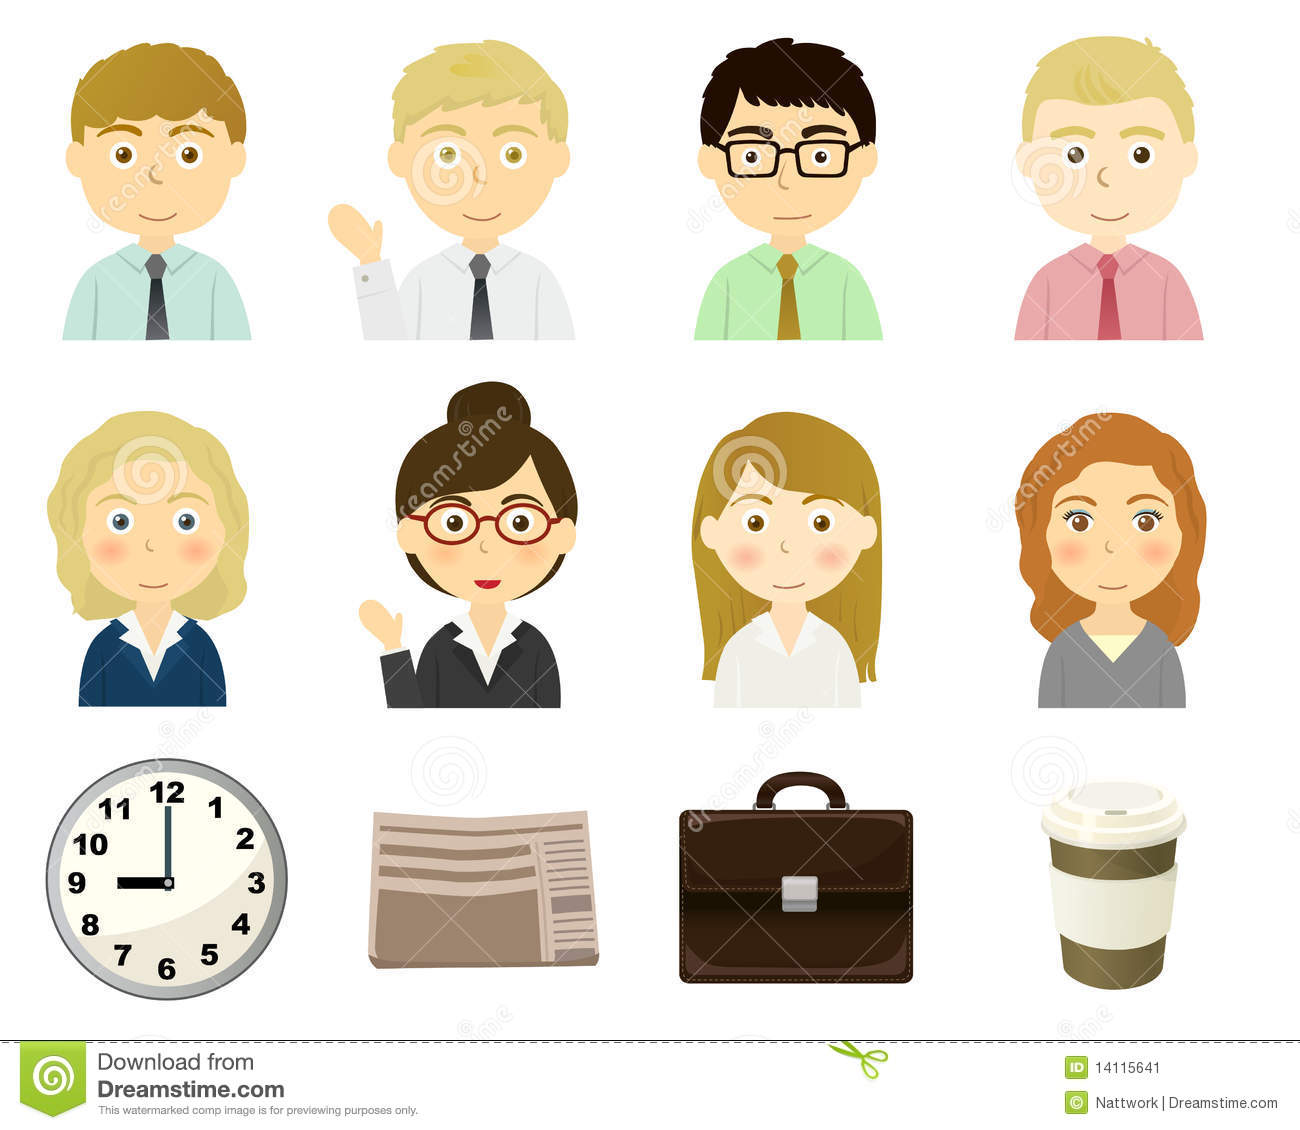 Characters of business person theme